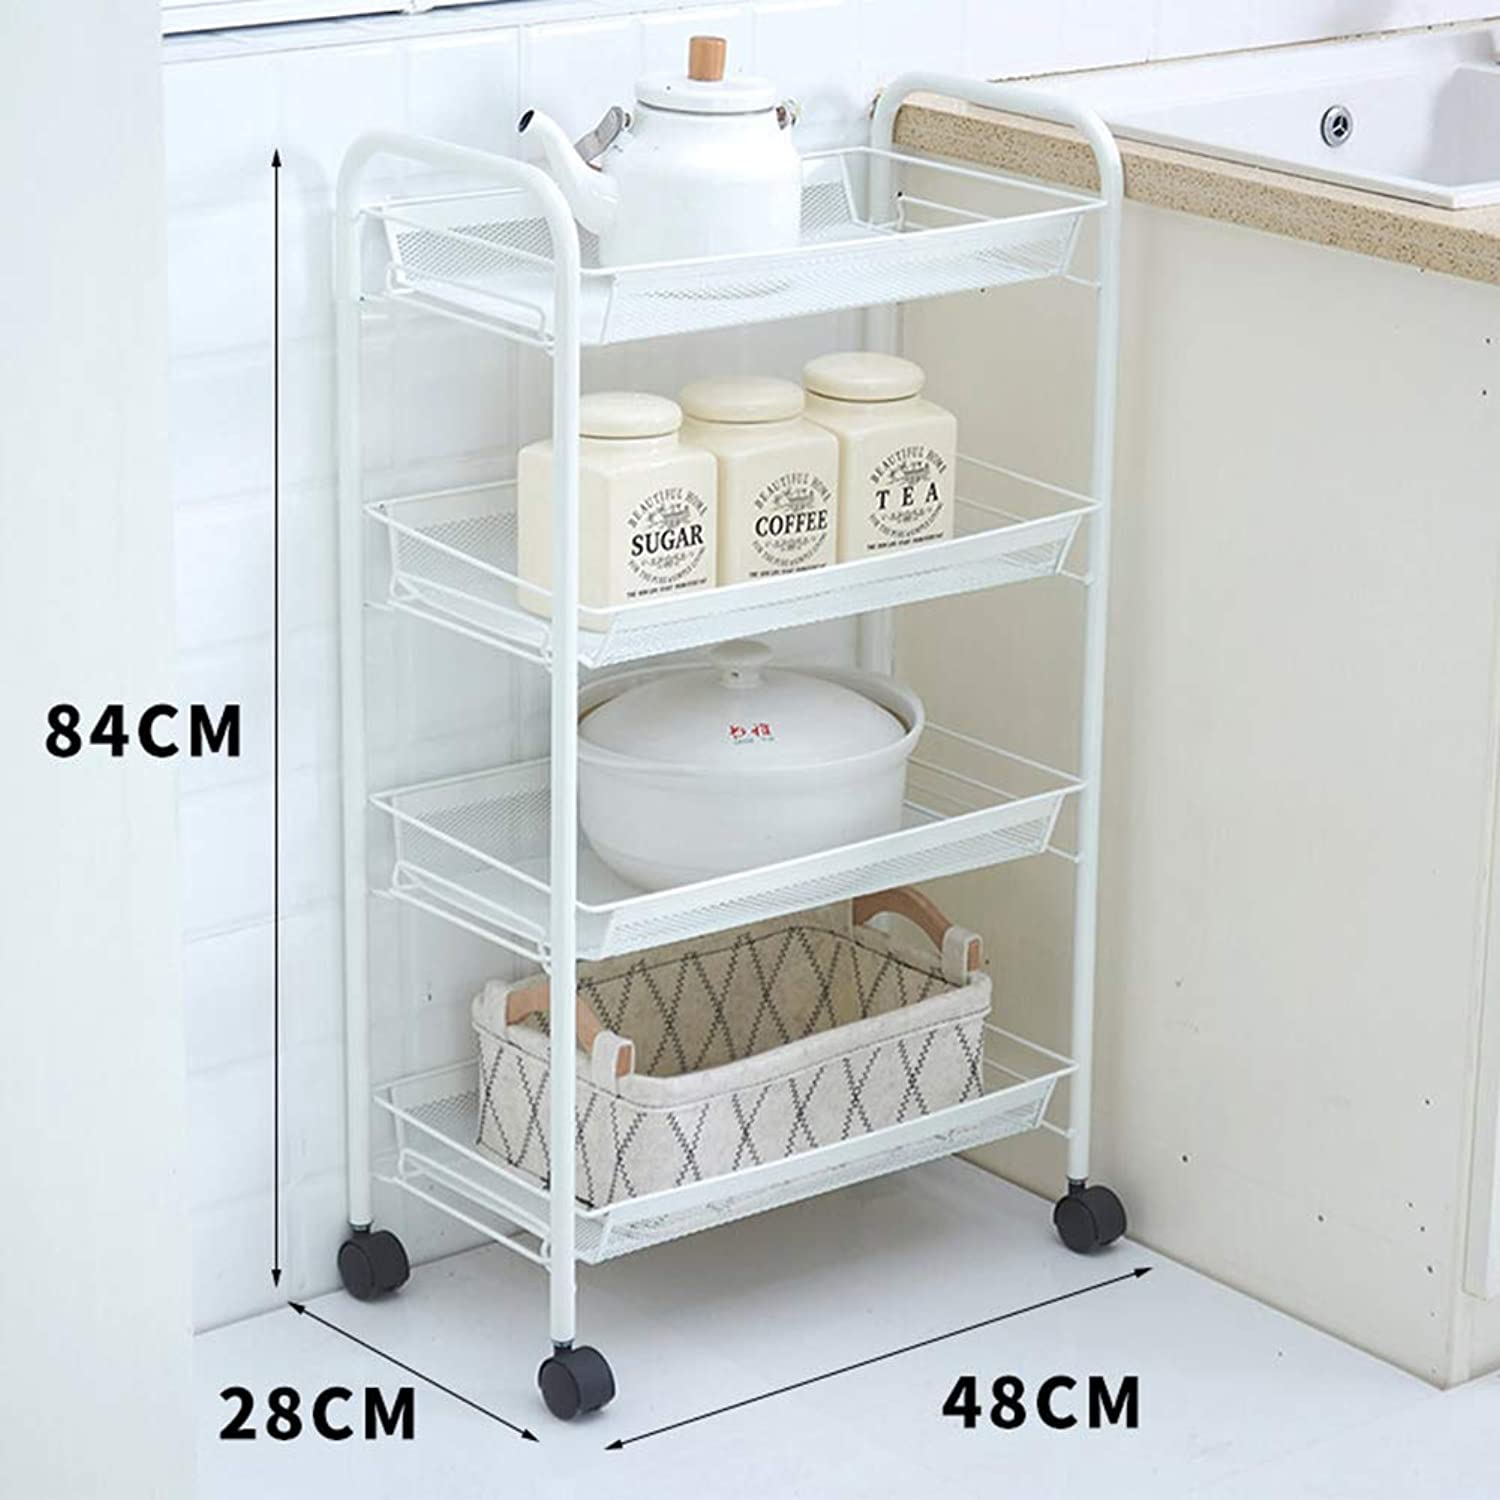 Rolling Storage Service Trolley Cart, Kitchen Bathroom Living Room Trolley Rack, Wrought Iron Thickened Bedroom Storage Rack with 4 Wheels, 3 Tiers   4 Tiers White max Load 99kg